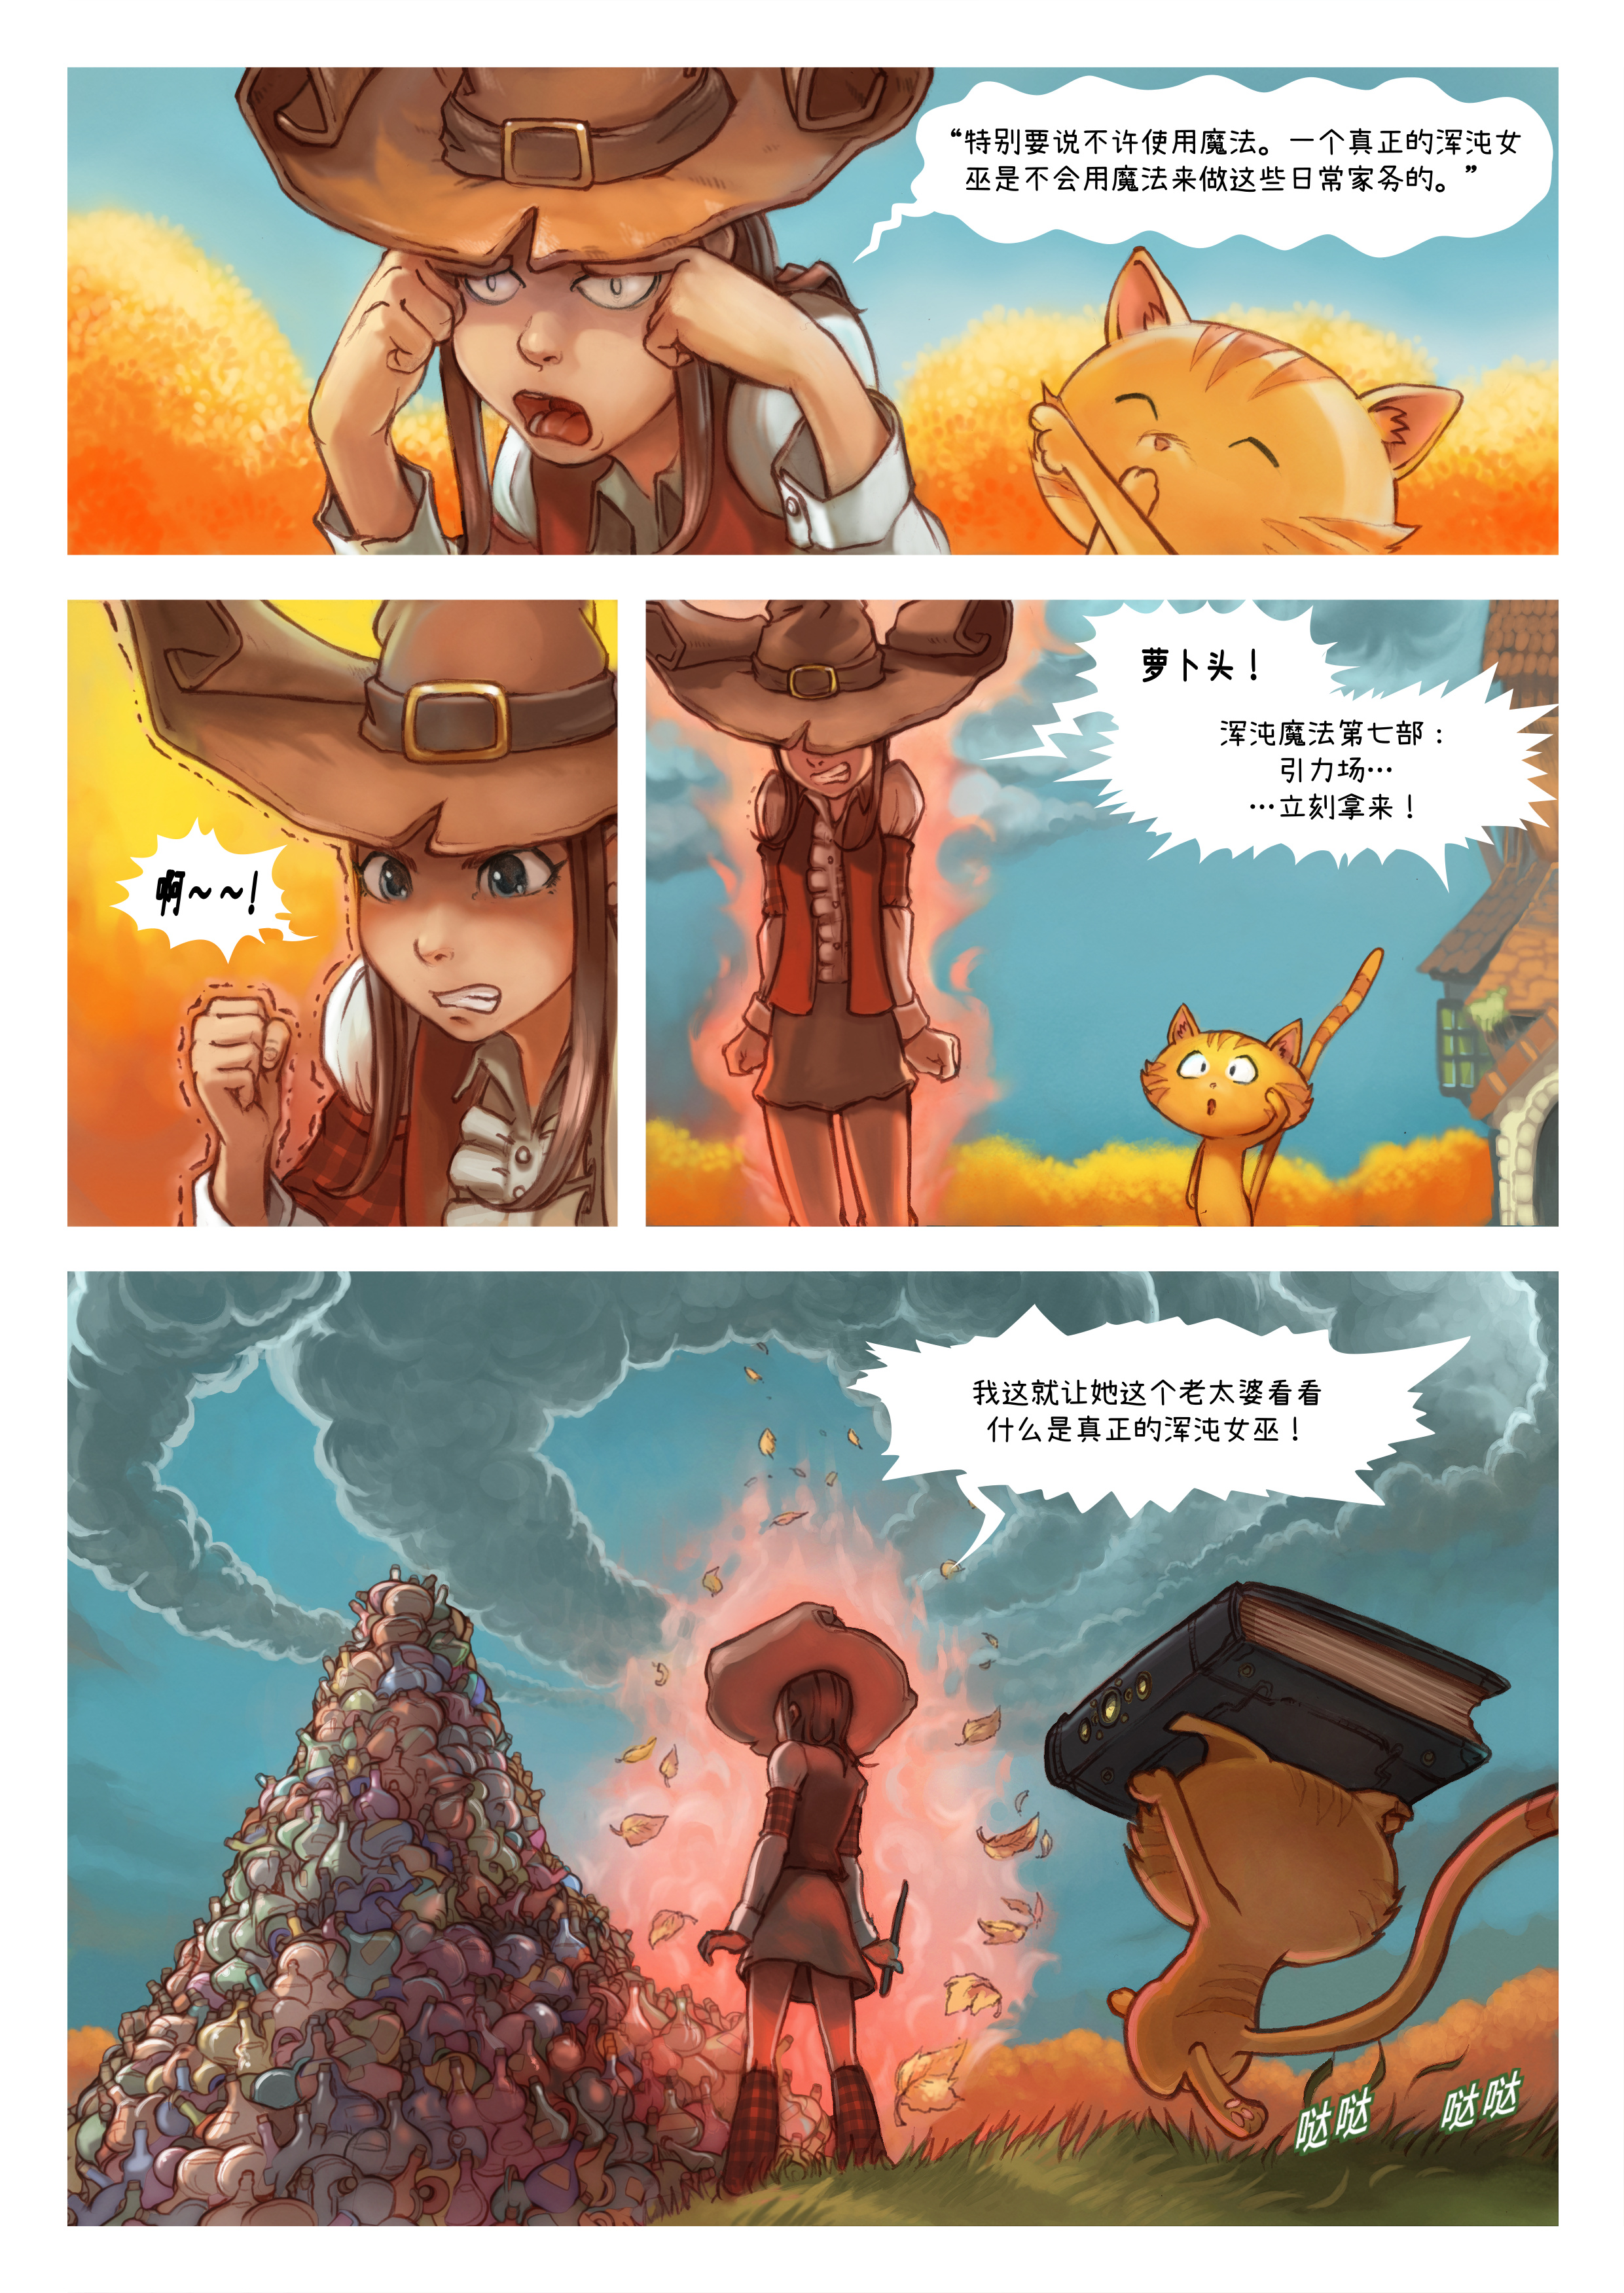 A webcomic page of Pepper&Carrot, 漫画全集 12 [cn], 页面 3